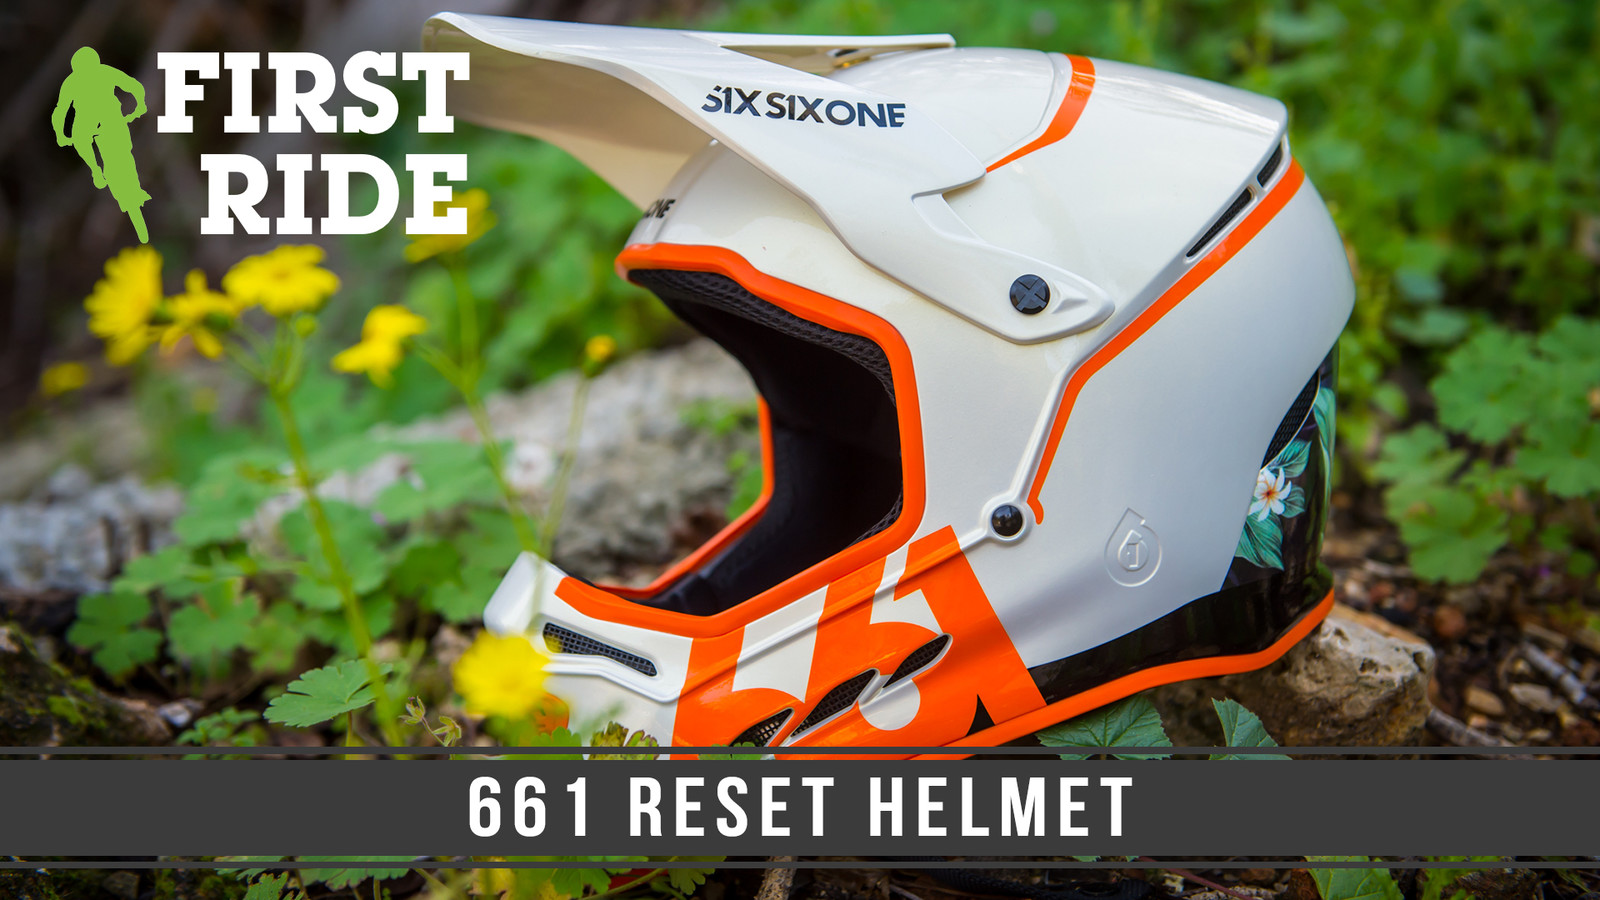 First Ride: 661 Reset Helmet